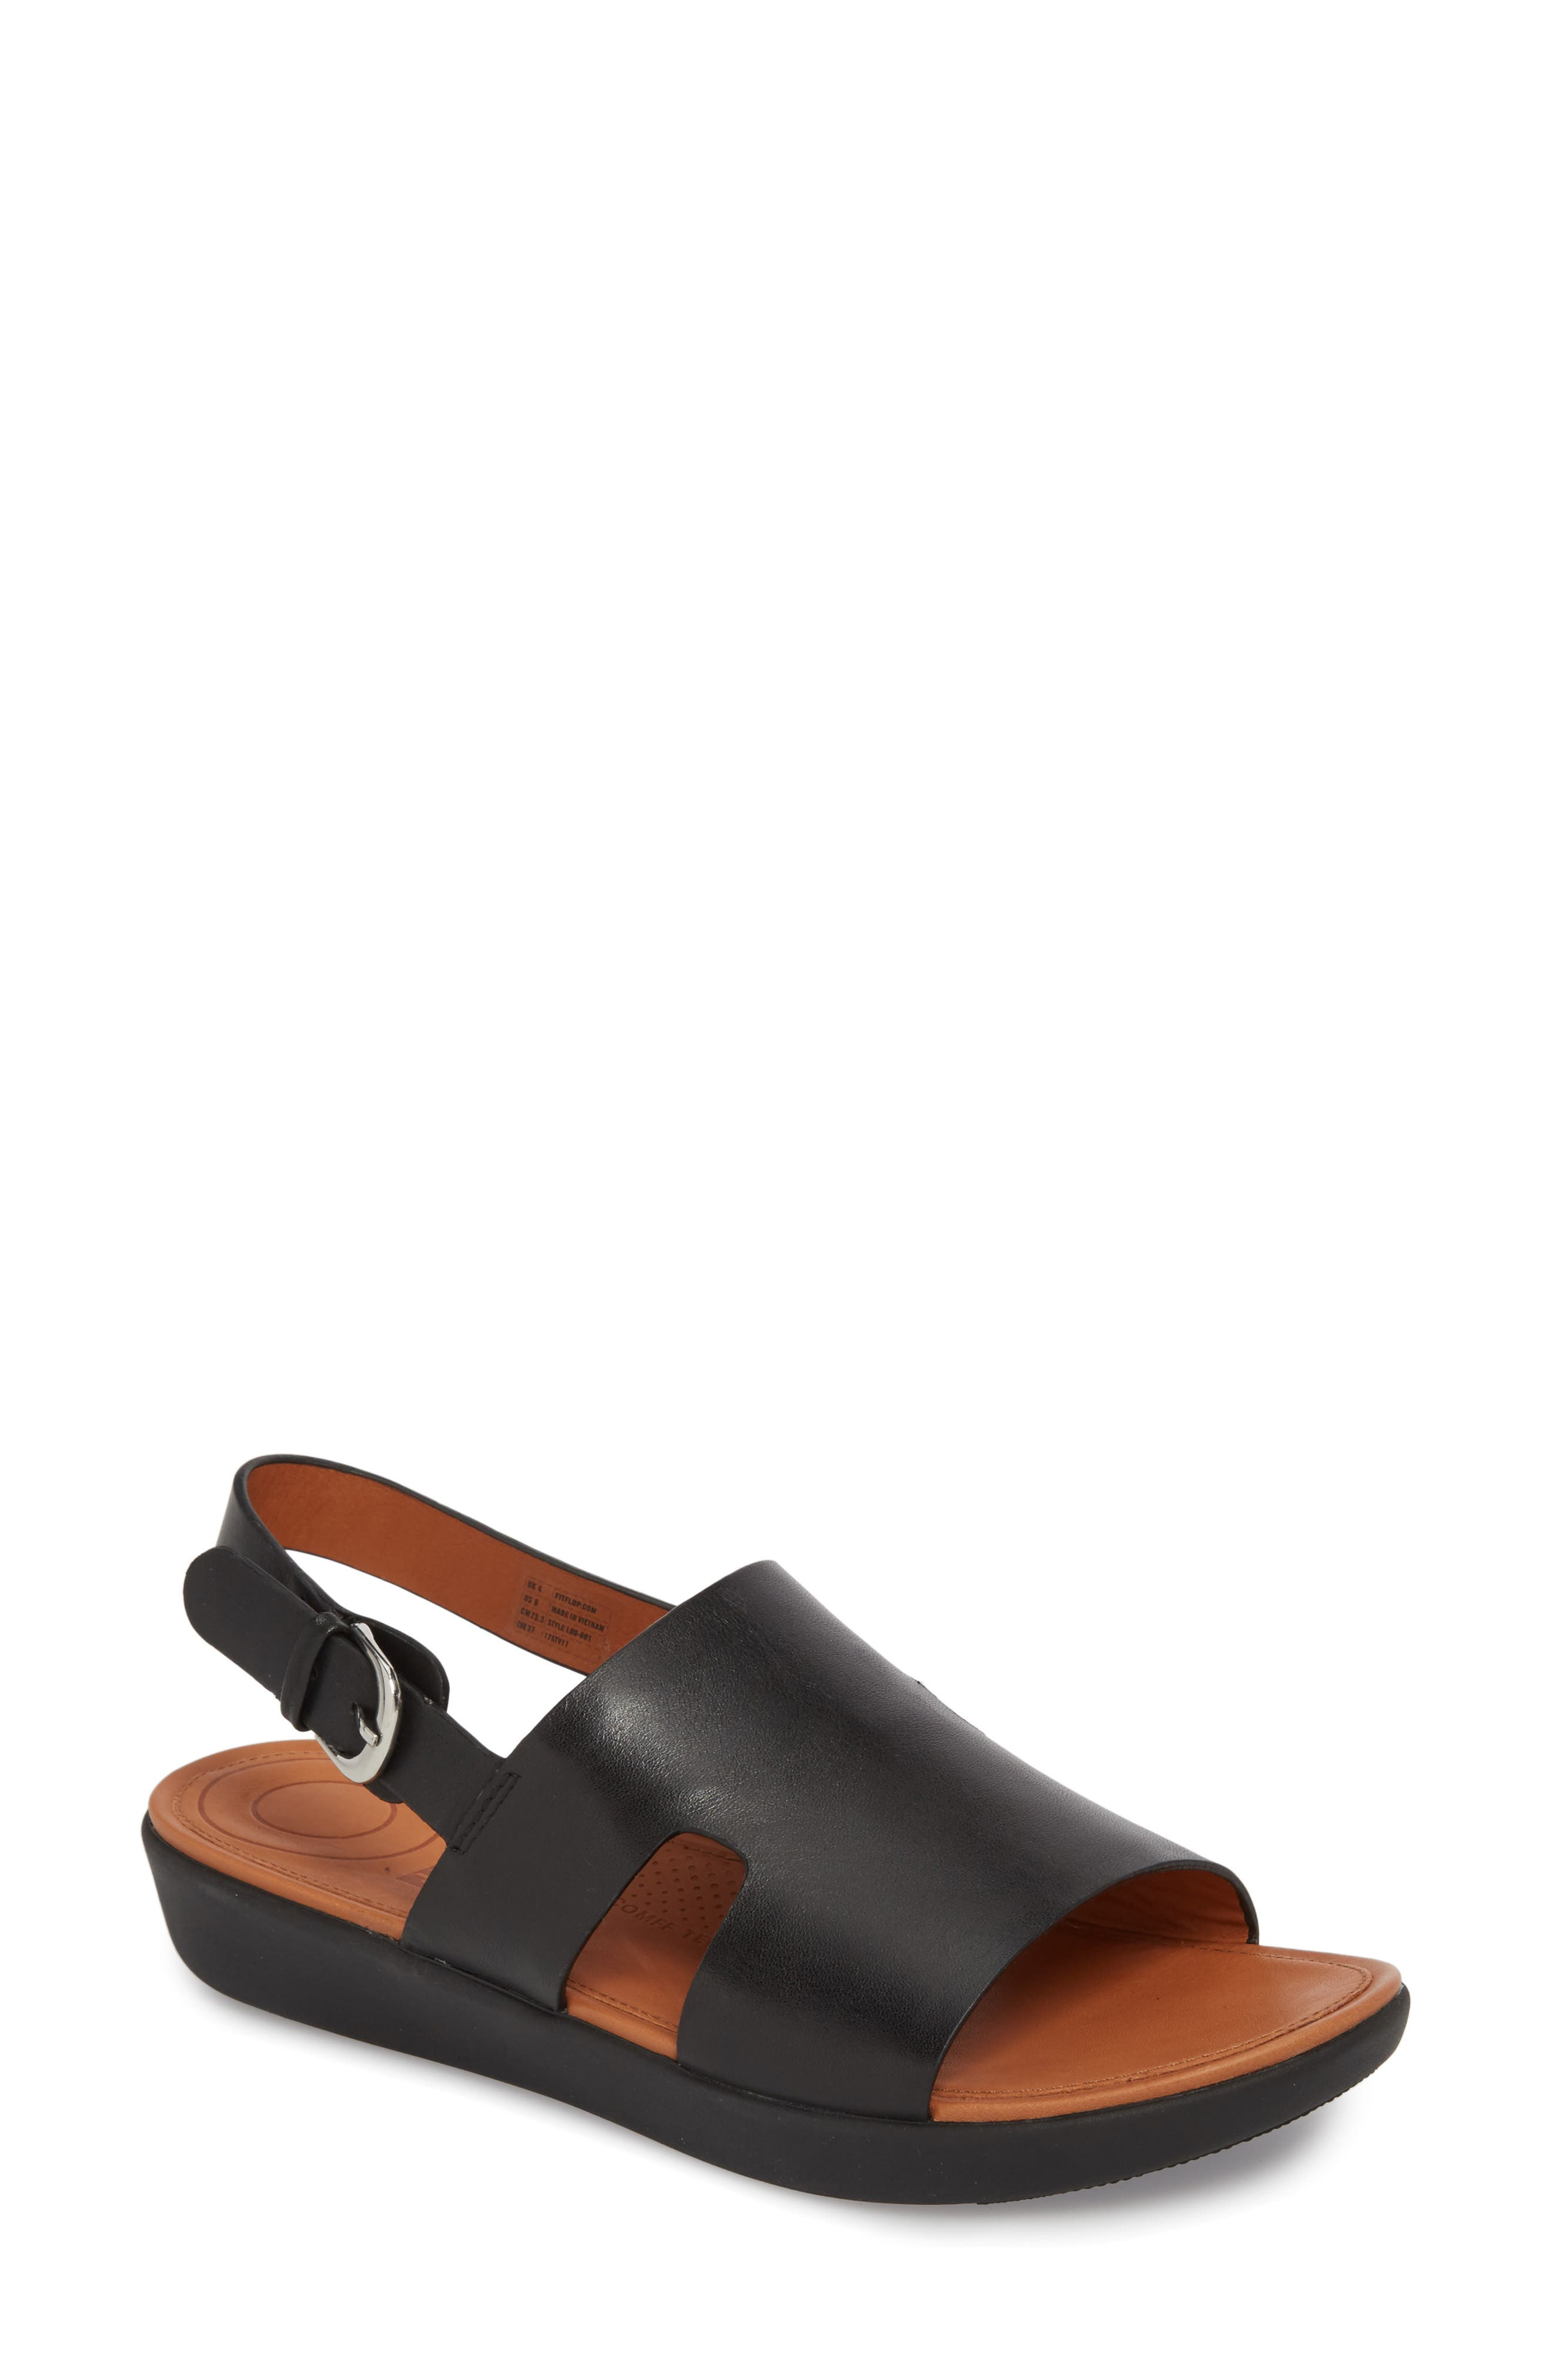 H-Bar Slingback Sandal,                         Main,                         color, Black Leather